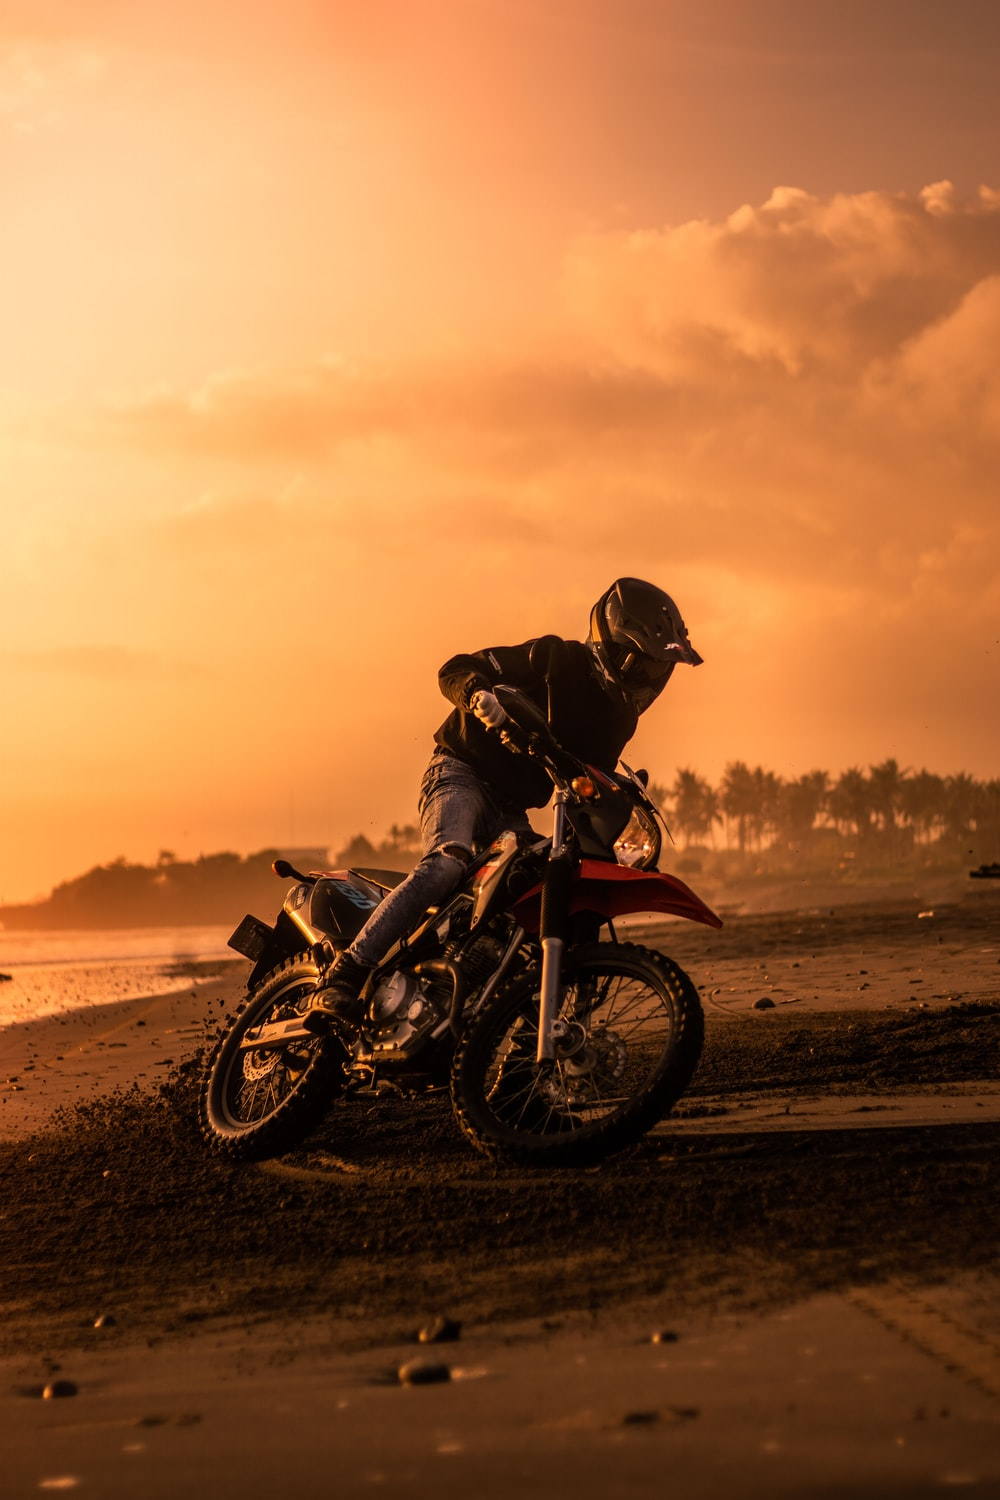 silhouette of man riding motorcycle on beach during sunset